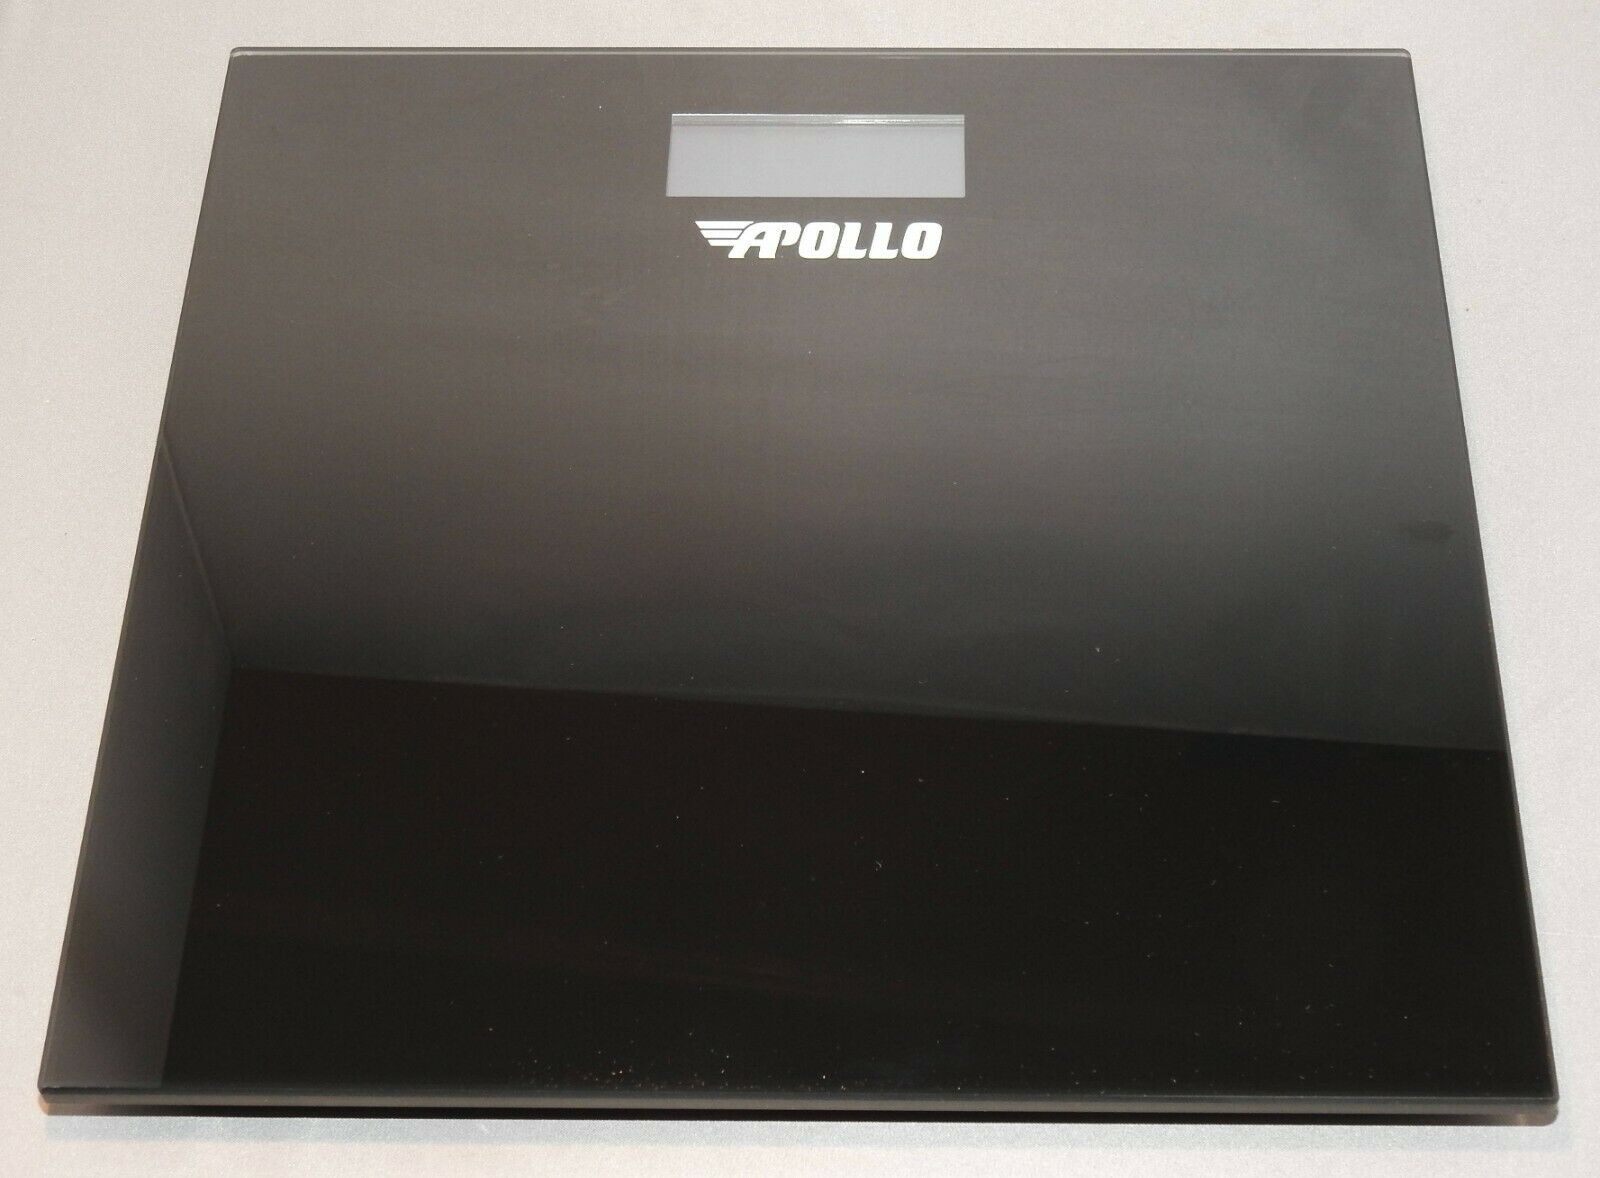 Apollo DIGITAL ELECTRONIC GLASS LCD BATHROOM Weighing Scales, 180 Kg/ 28St 5lb